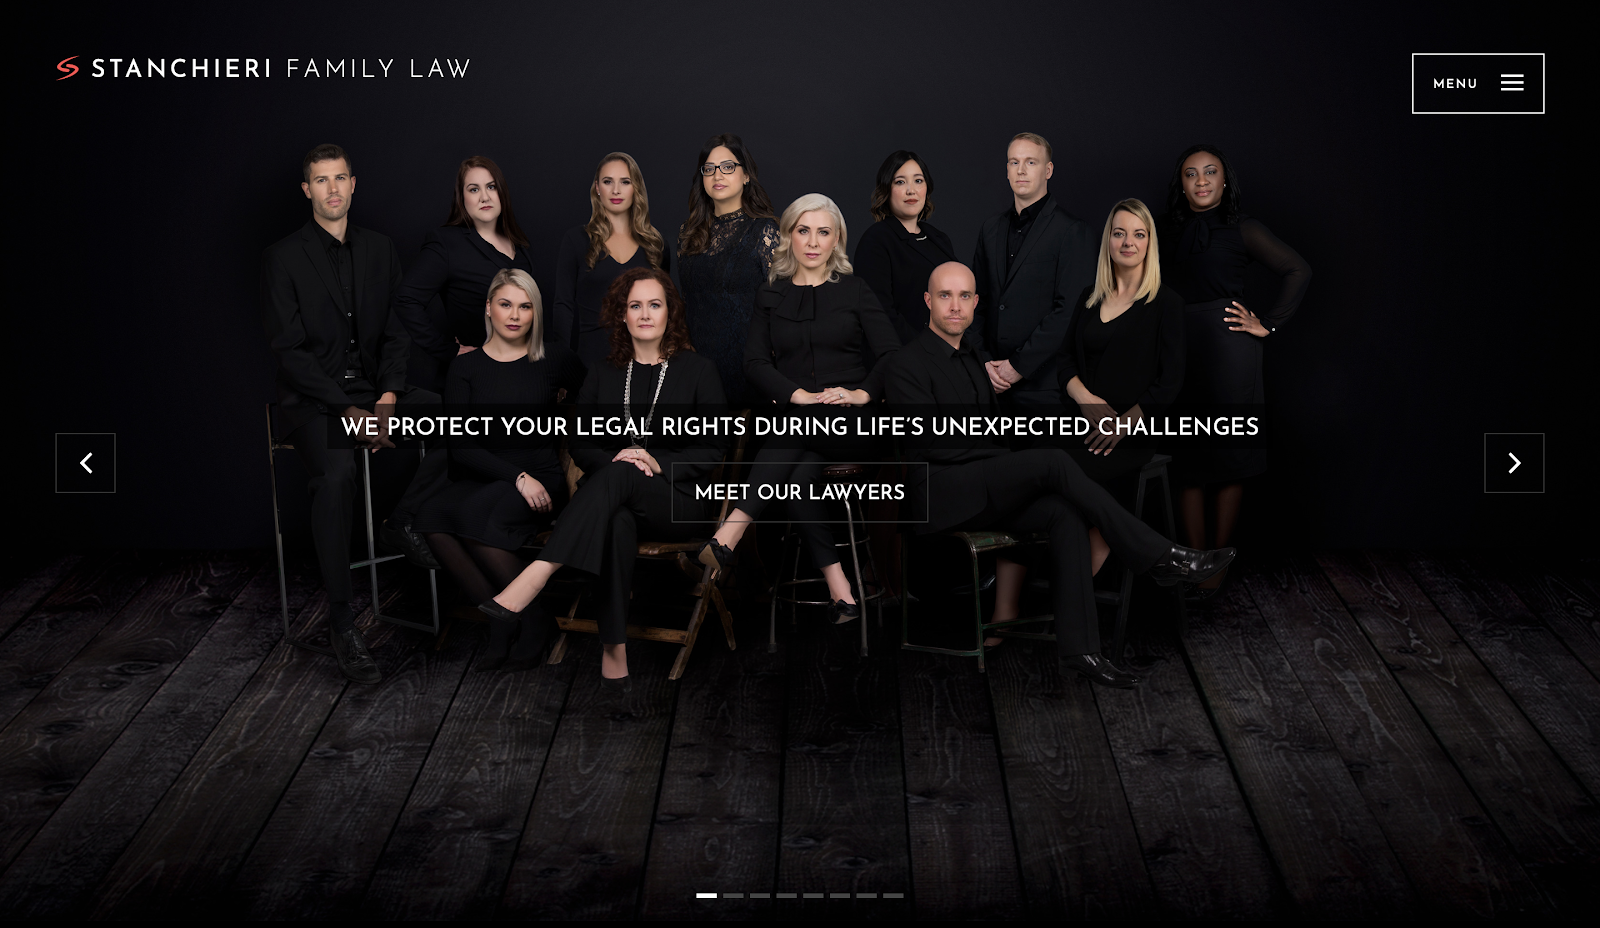 Stanchieri Family Law best law firm websites